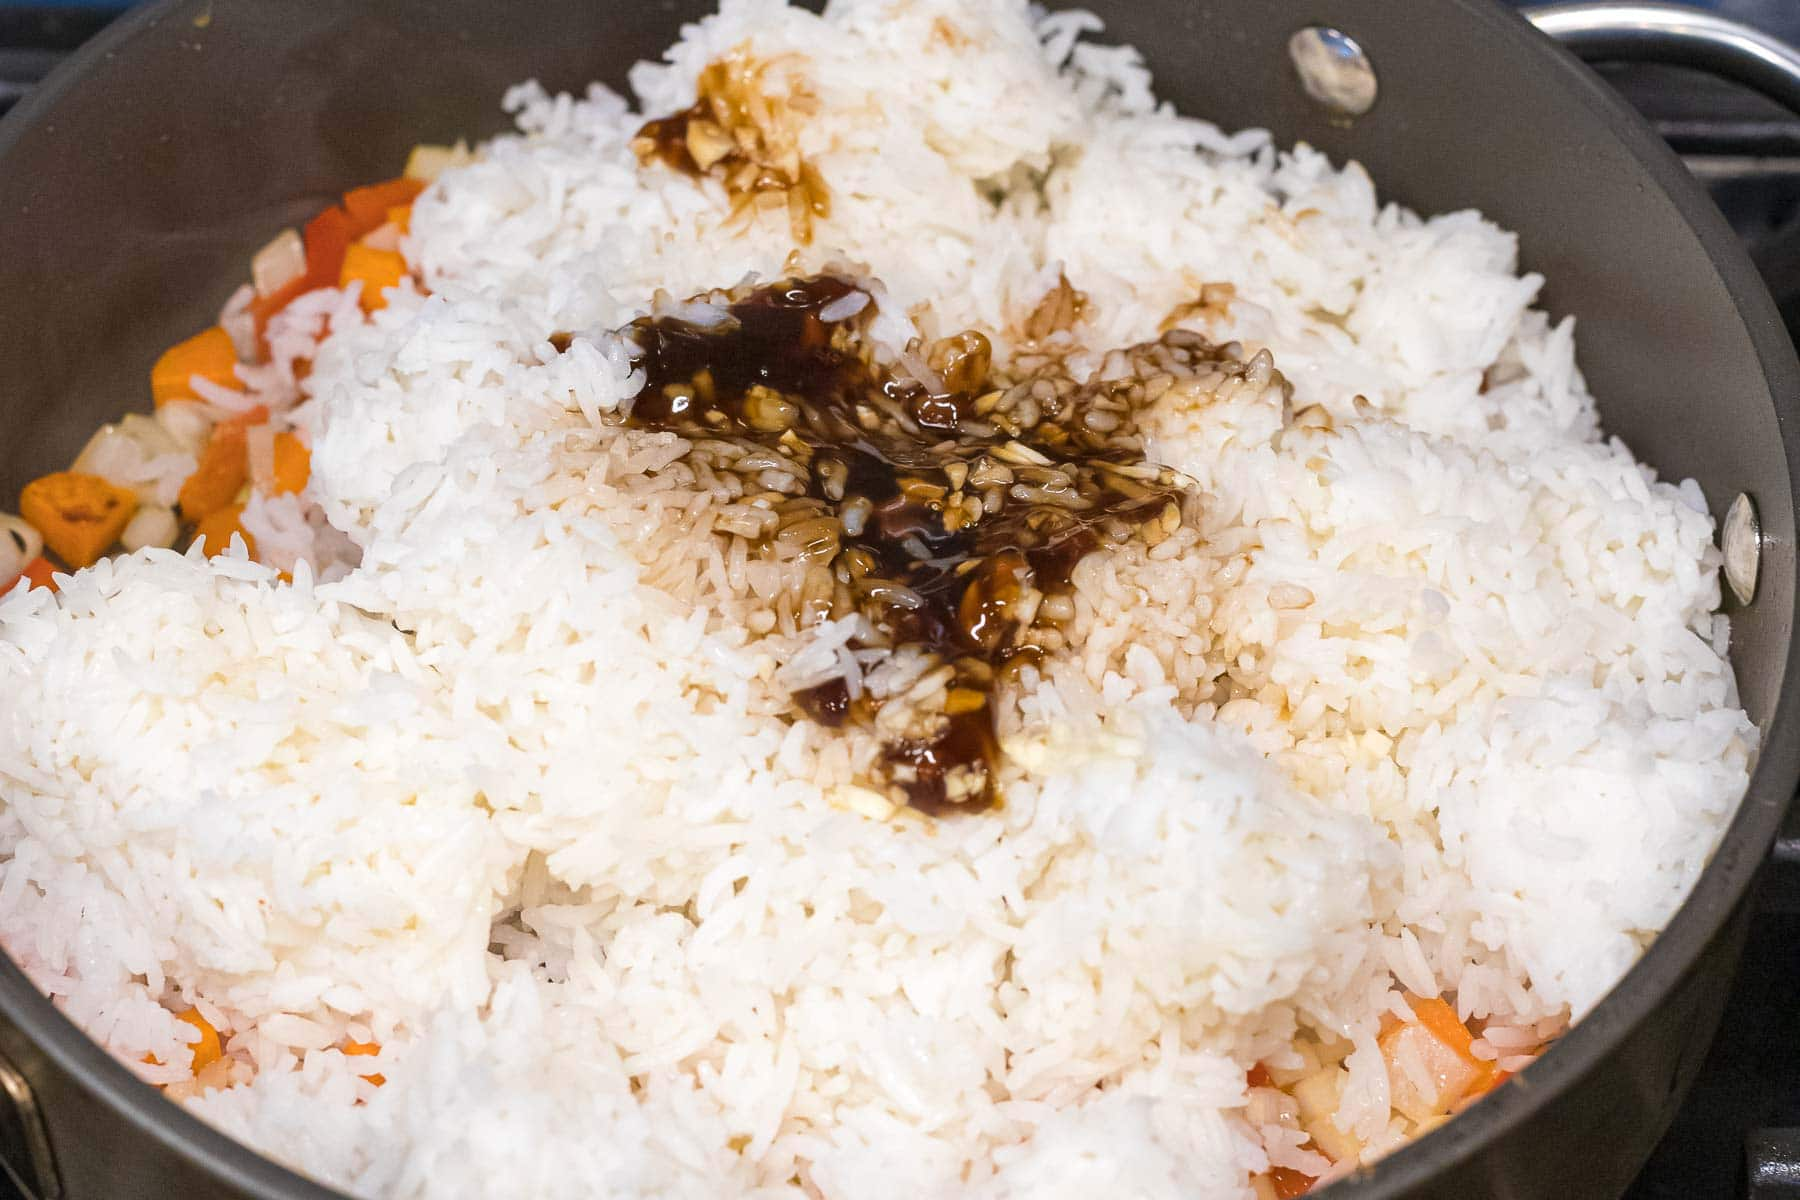 cooked rice with sauce in a nonstick pan